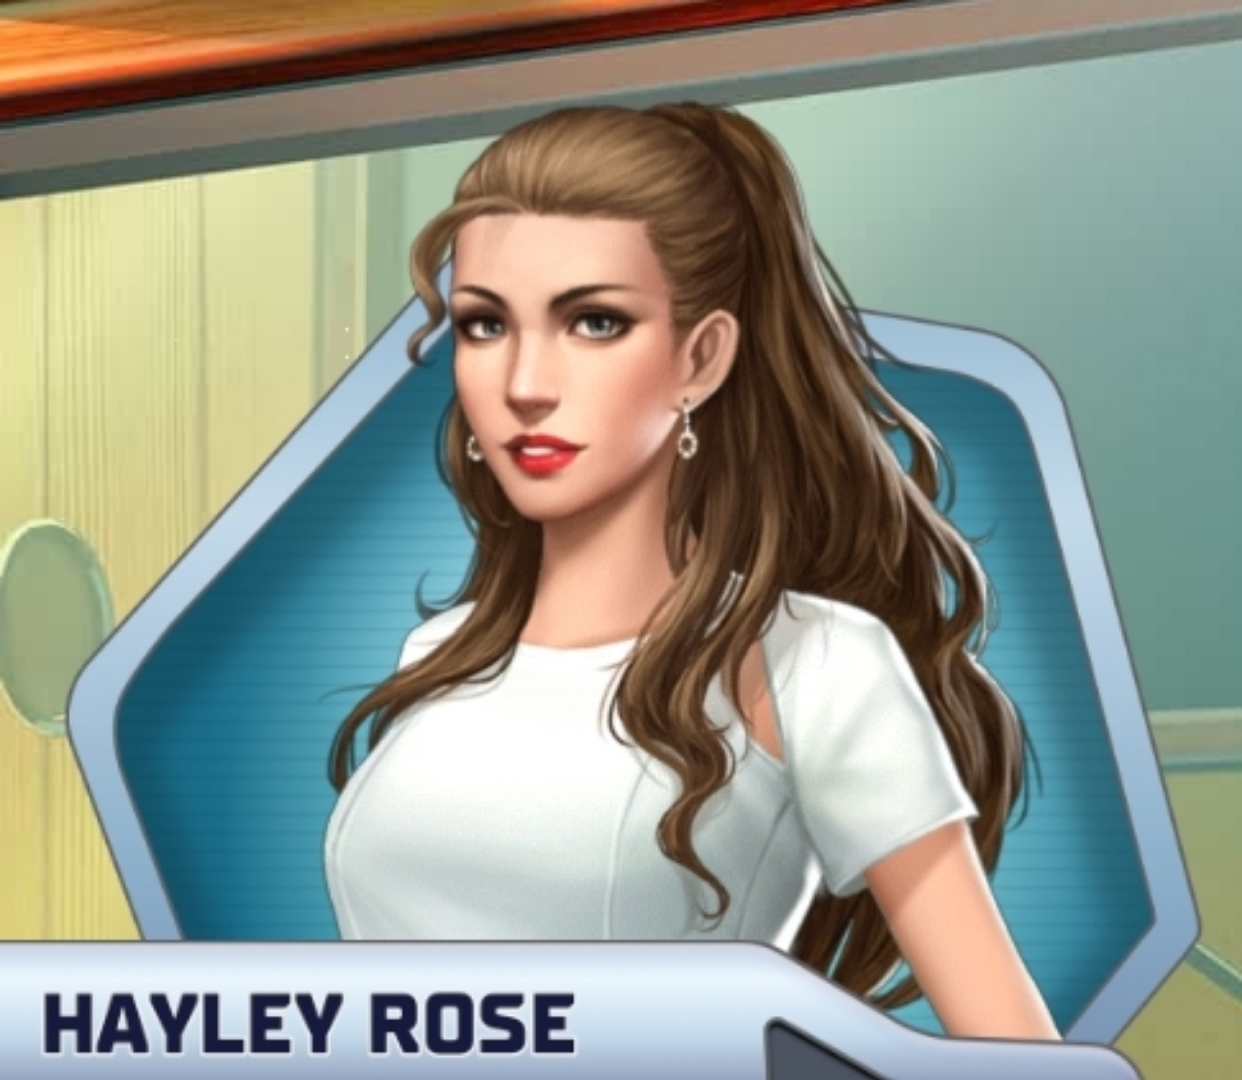 Hayley Rose Choices Stories You Play Wikia Fandom